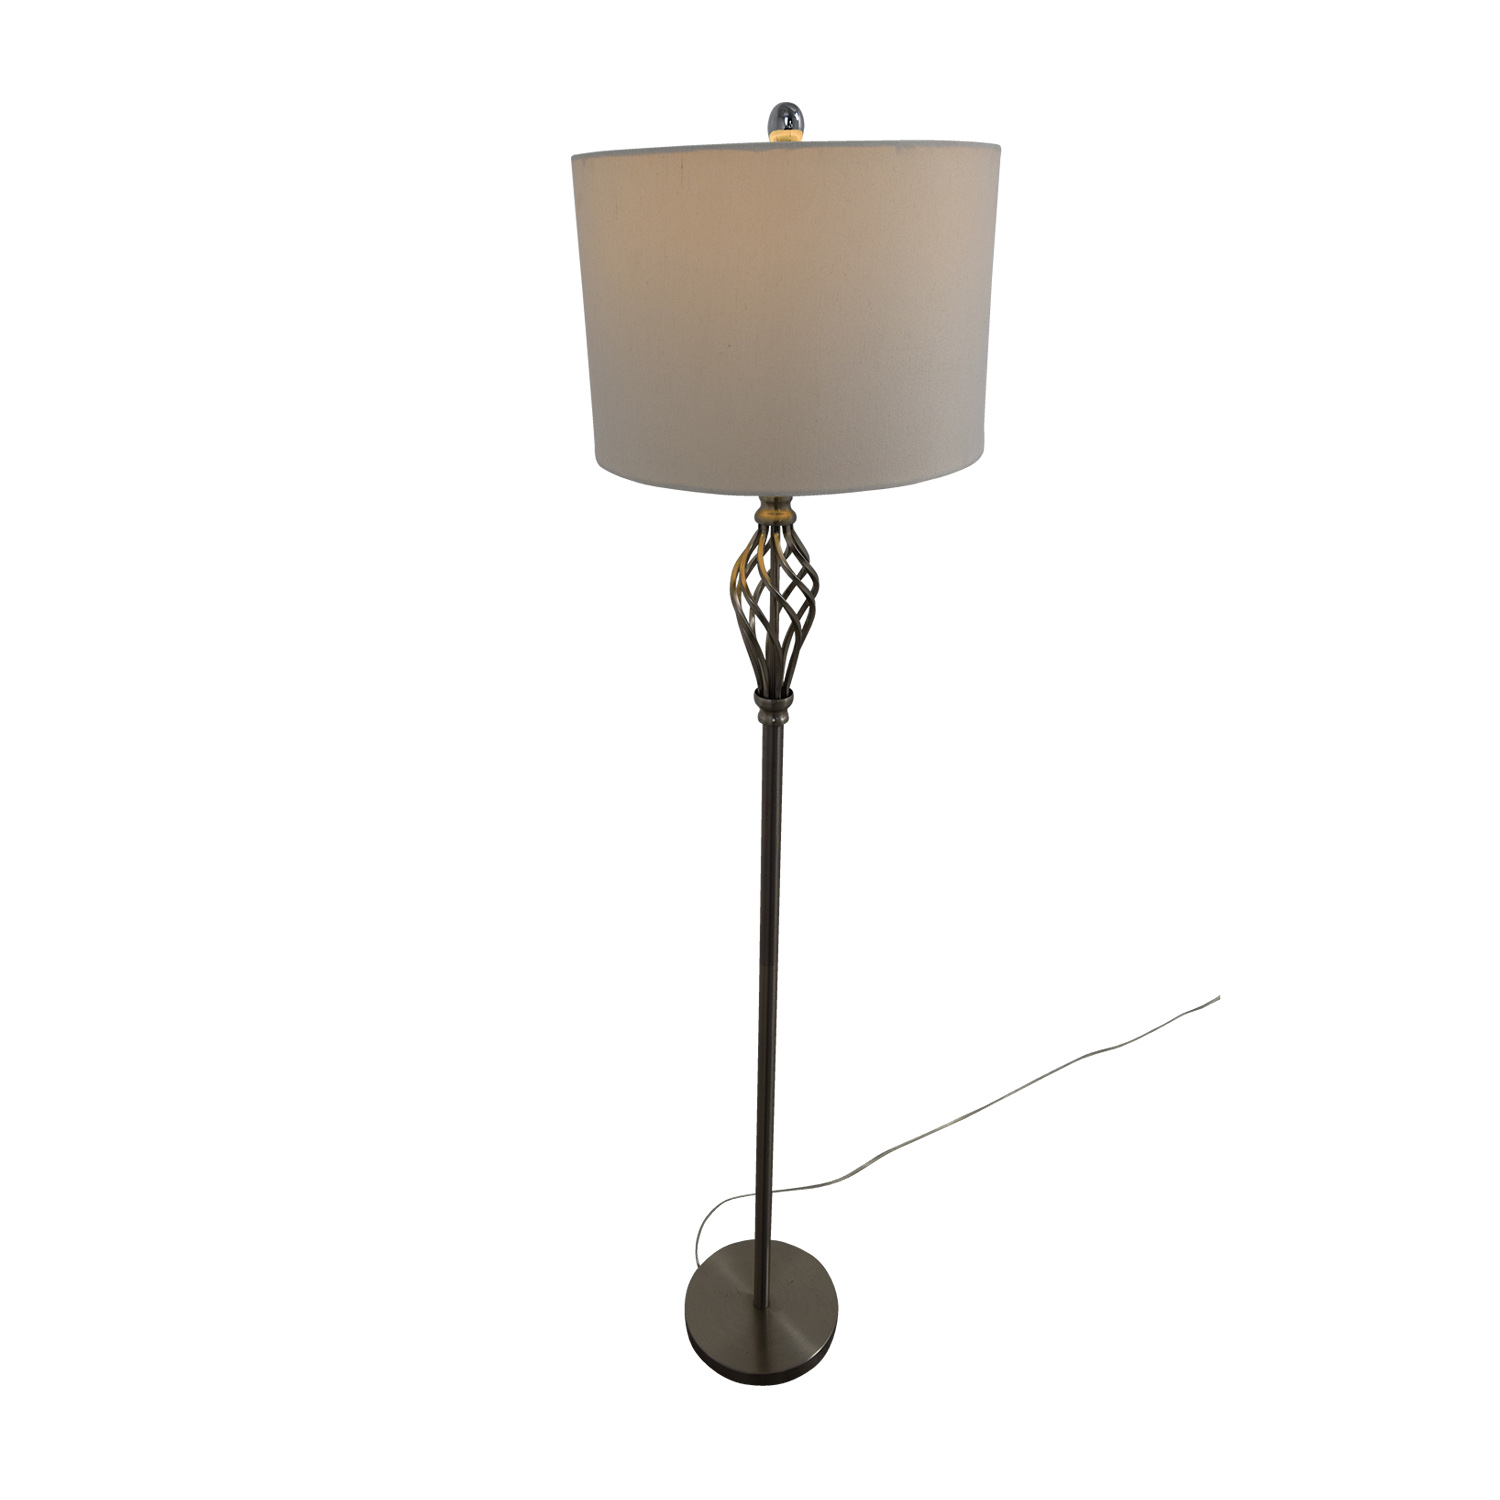 85 off silver decorative floor lamp decor for Ornate silver floor lamp